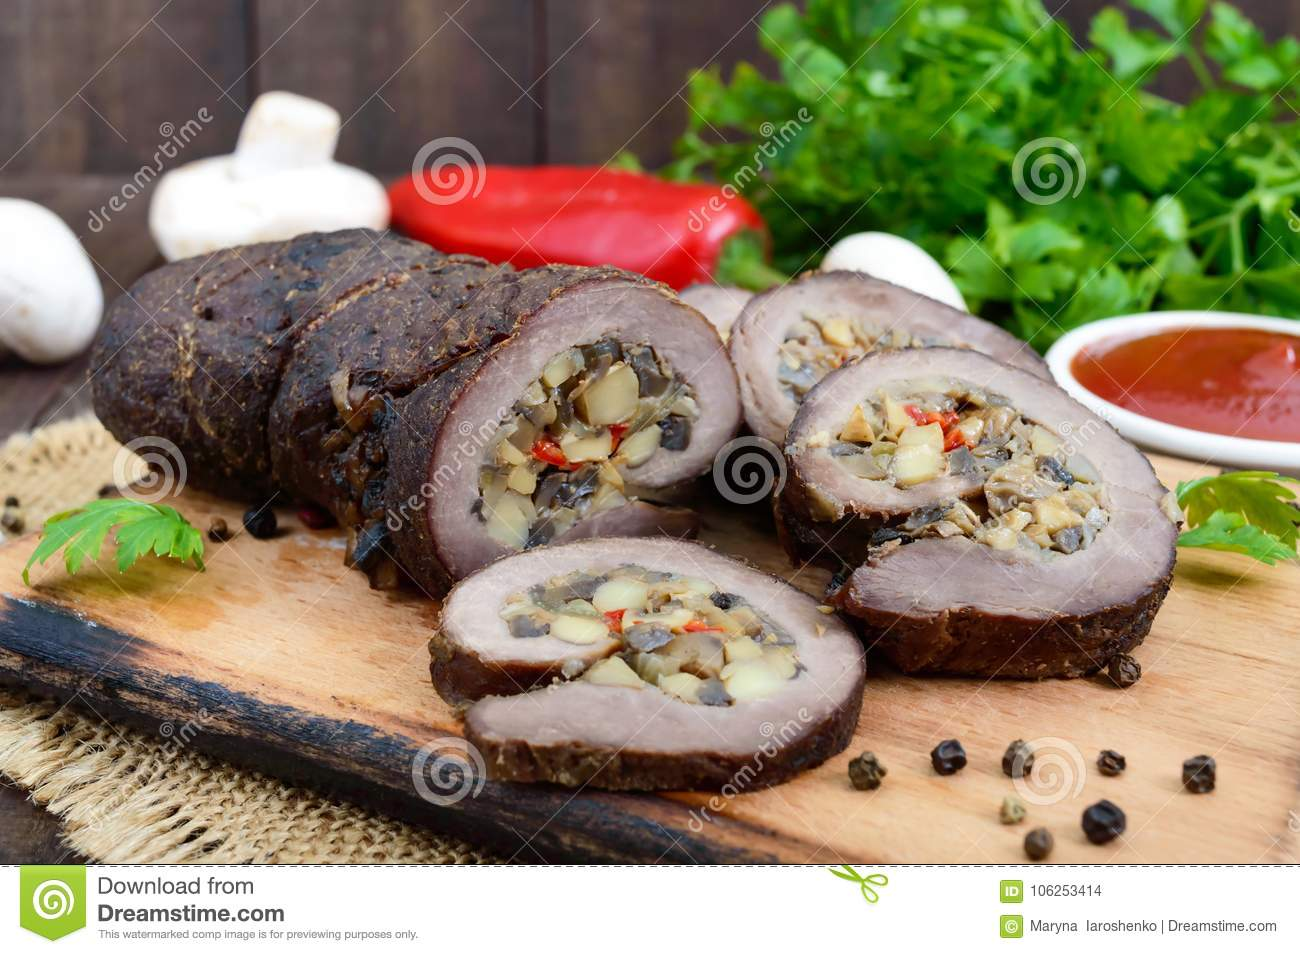 Christmas Meatloaf.Meatloaf Roll Stuffed With Mushrooms Sweet Pepper And